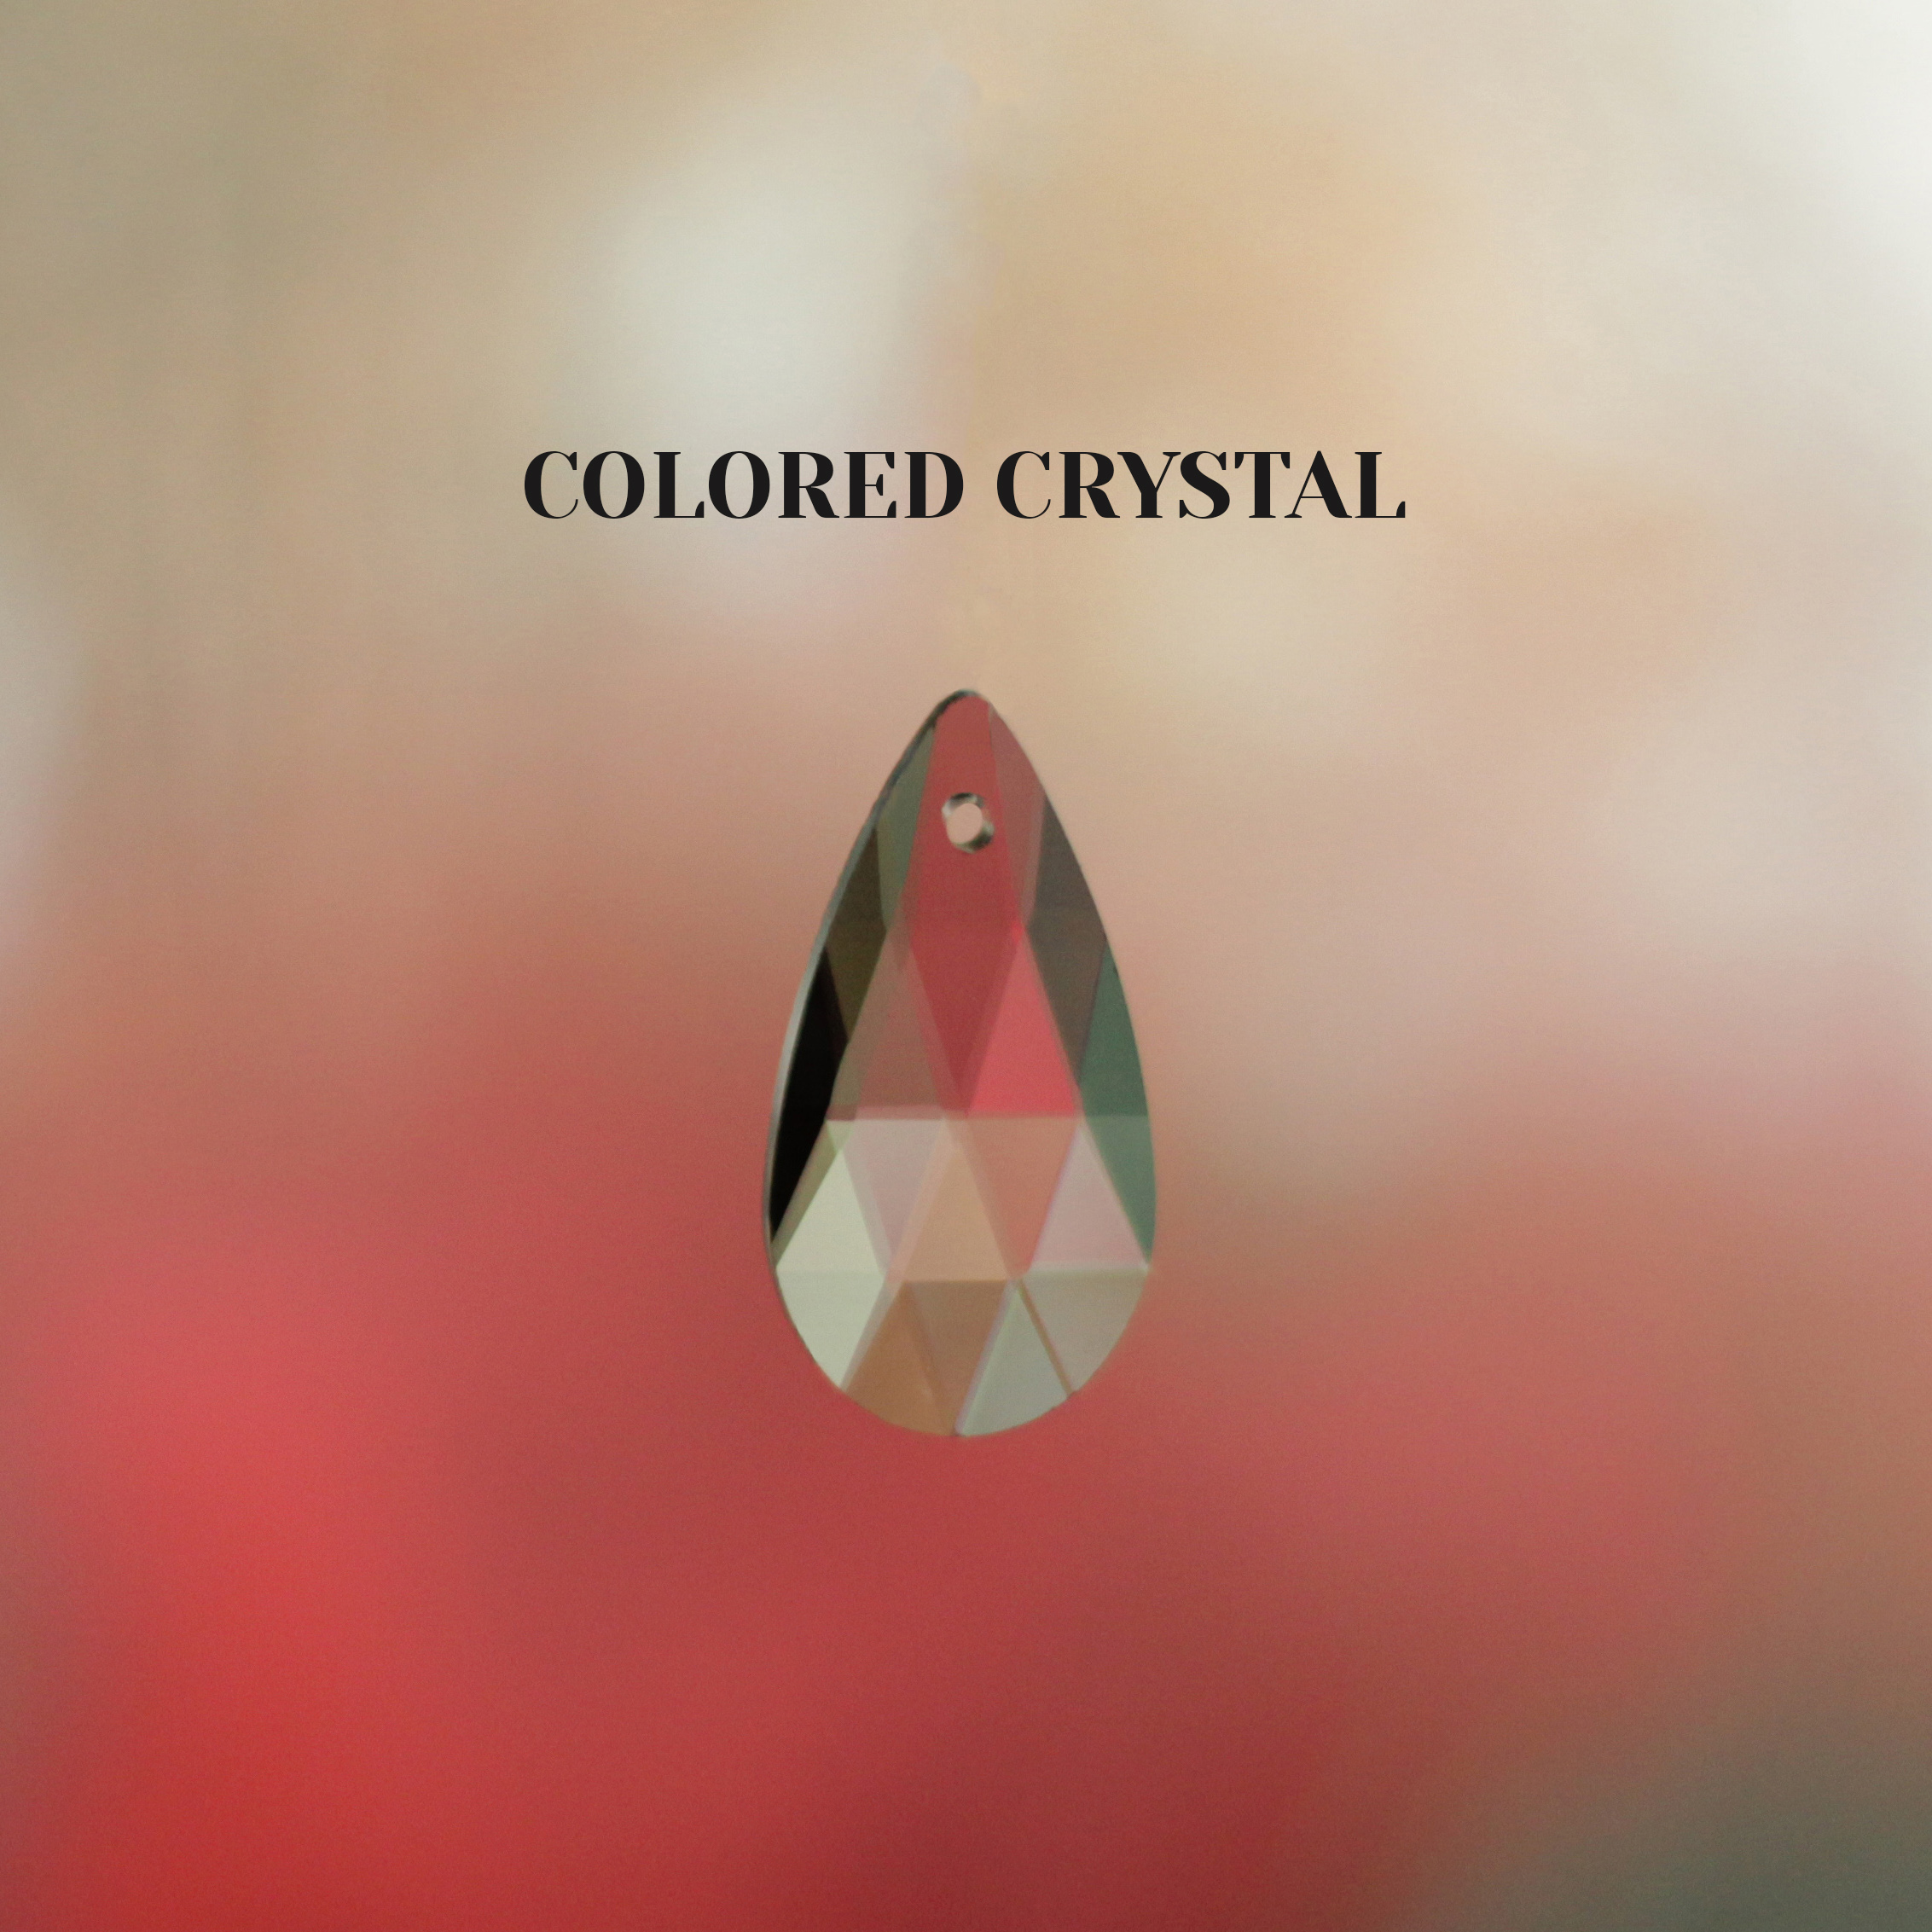 Colored Crystal